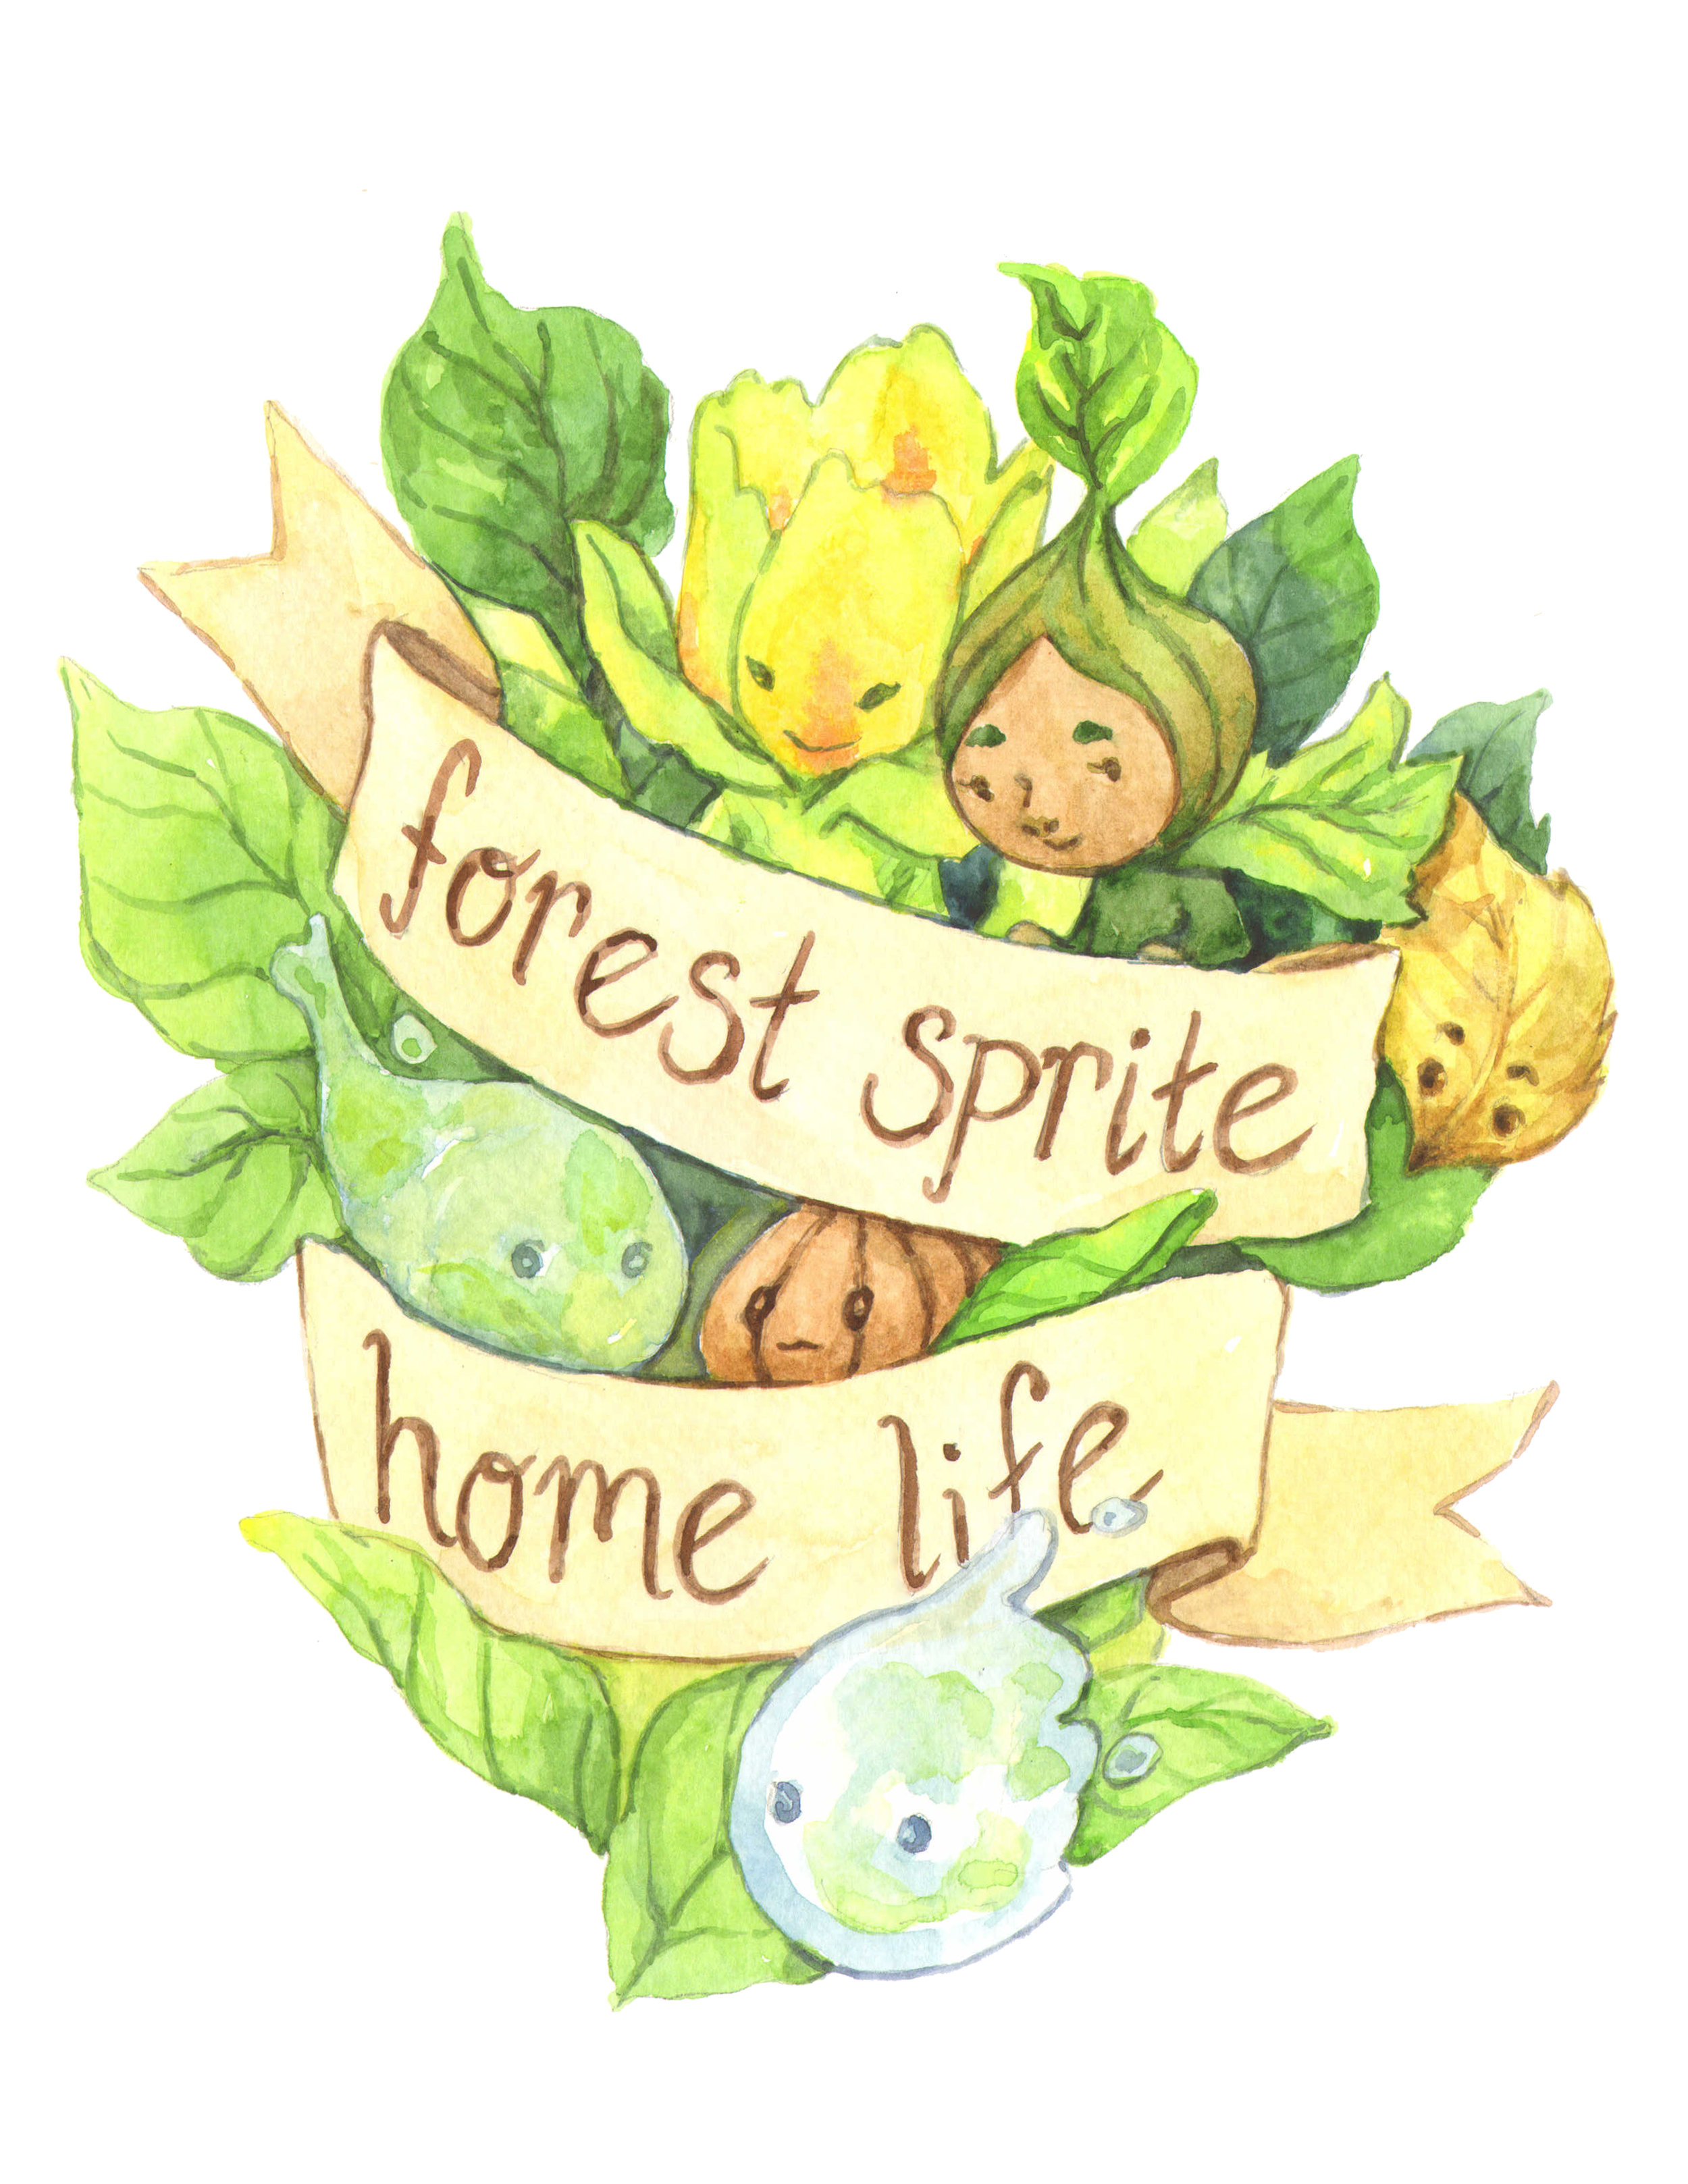 Forest Sprite Home Life Banner by Lucy Kagan